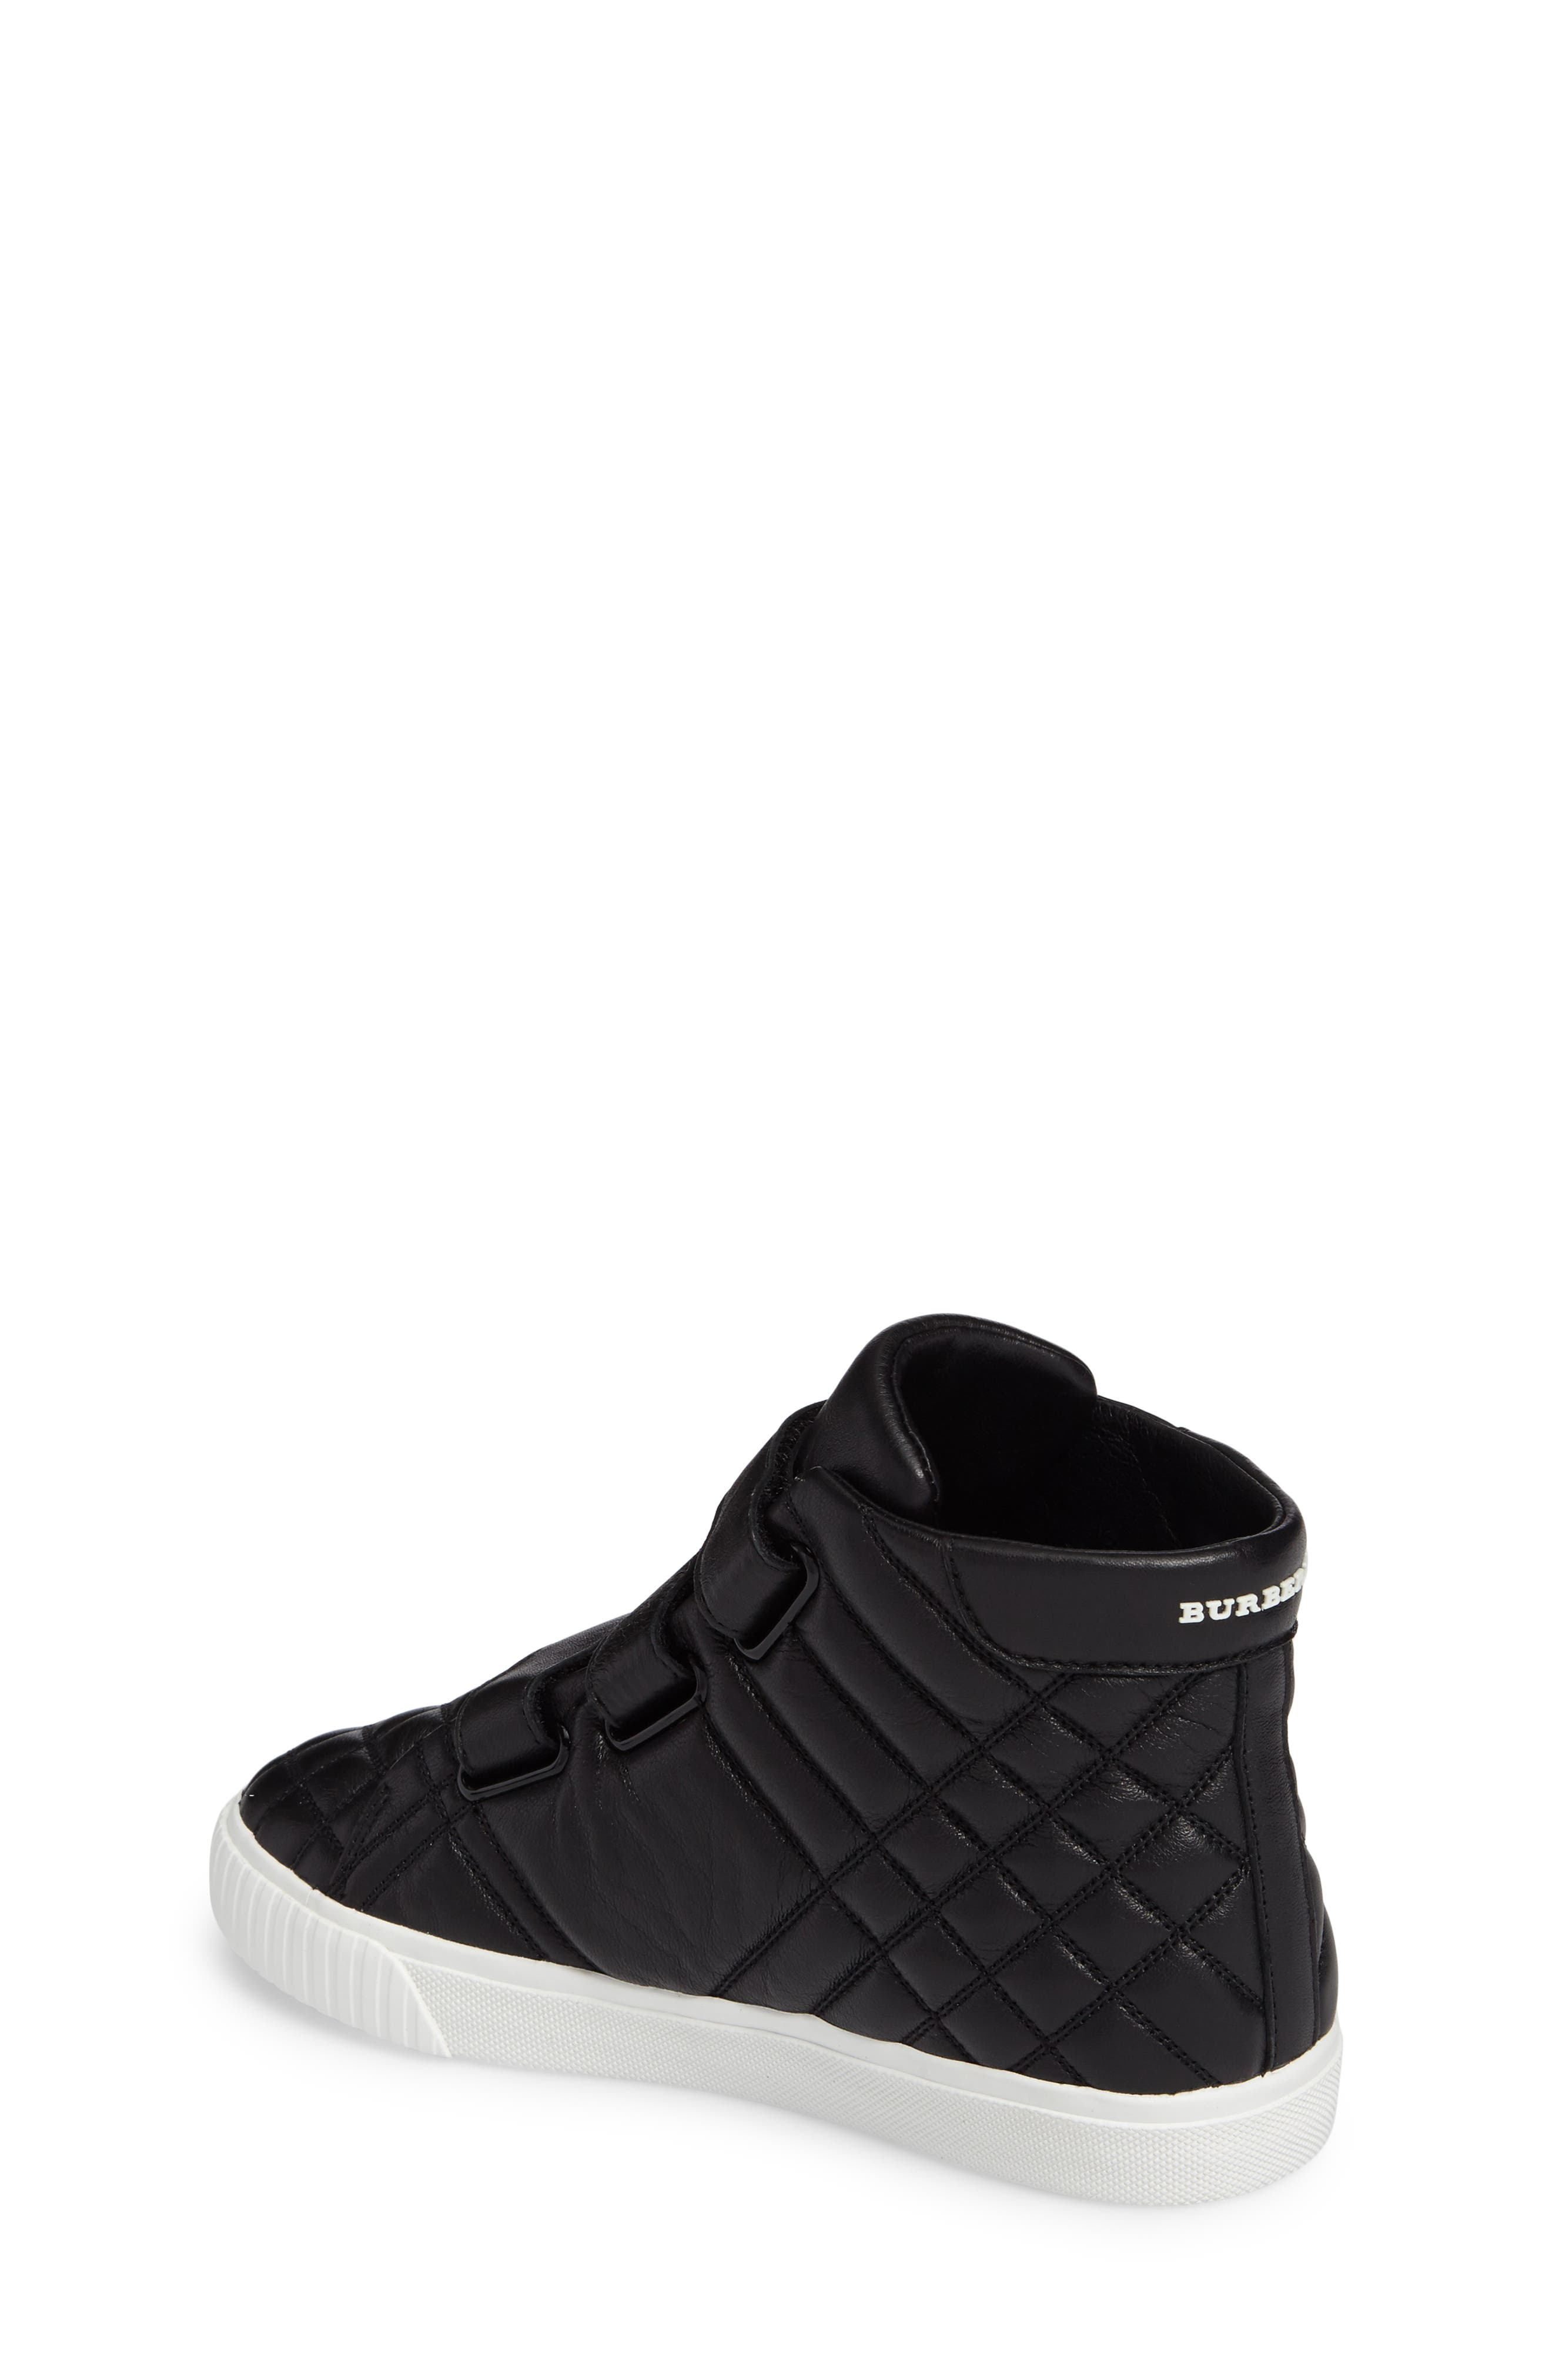 Sturrock Quilted High Top Sneaker,                             Alternate thumbnail 3, color,